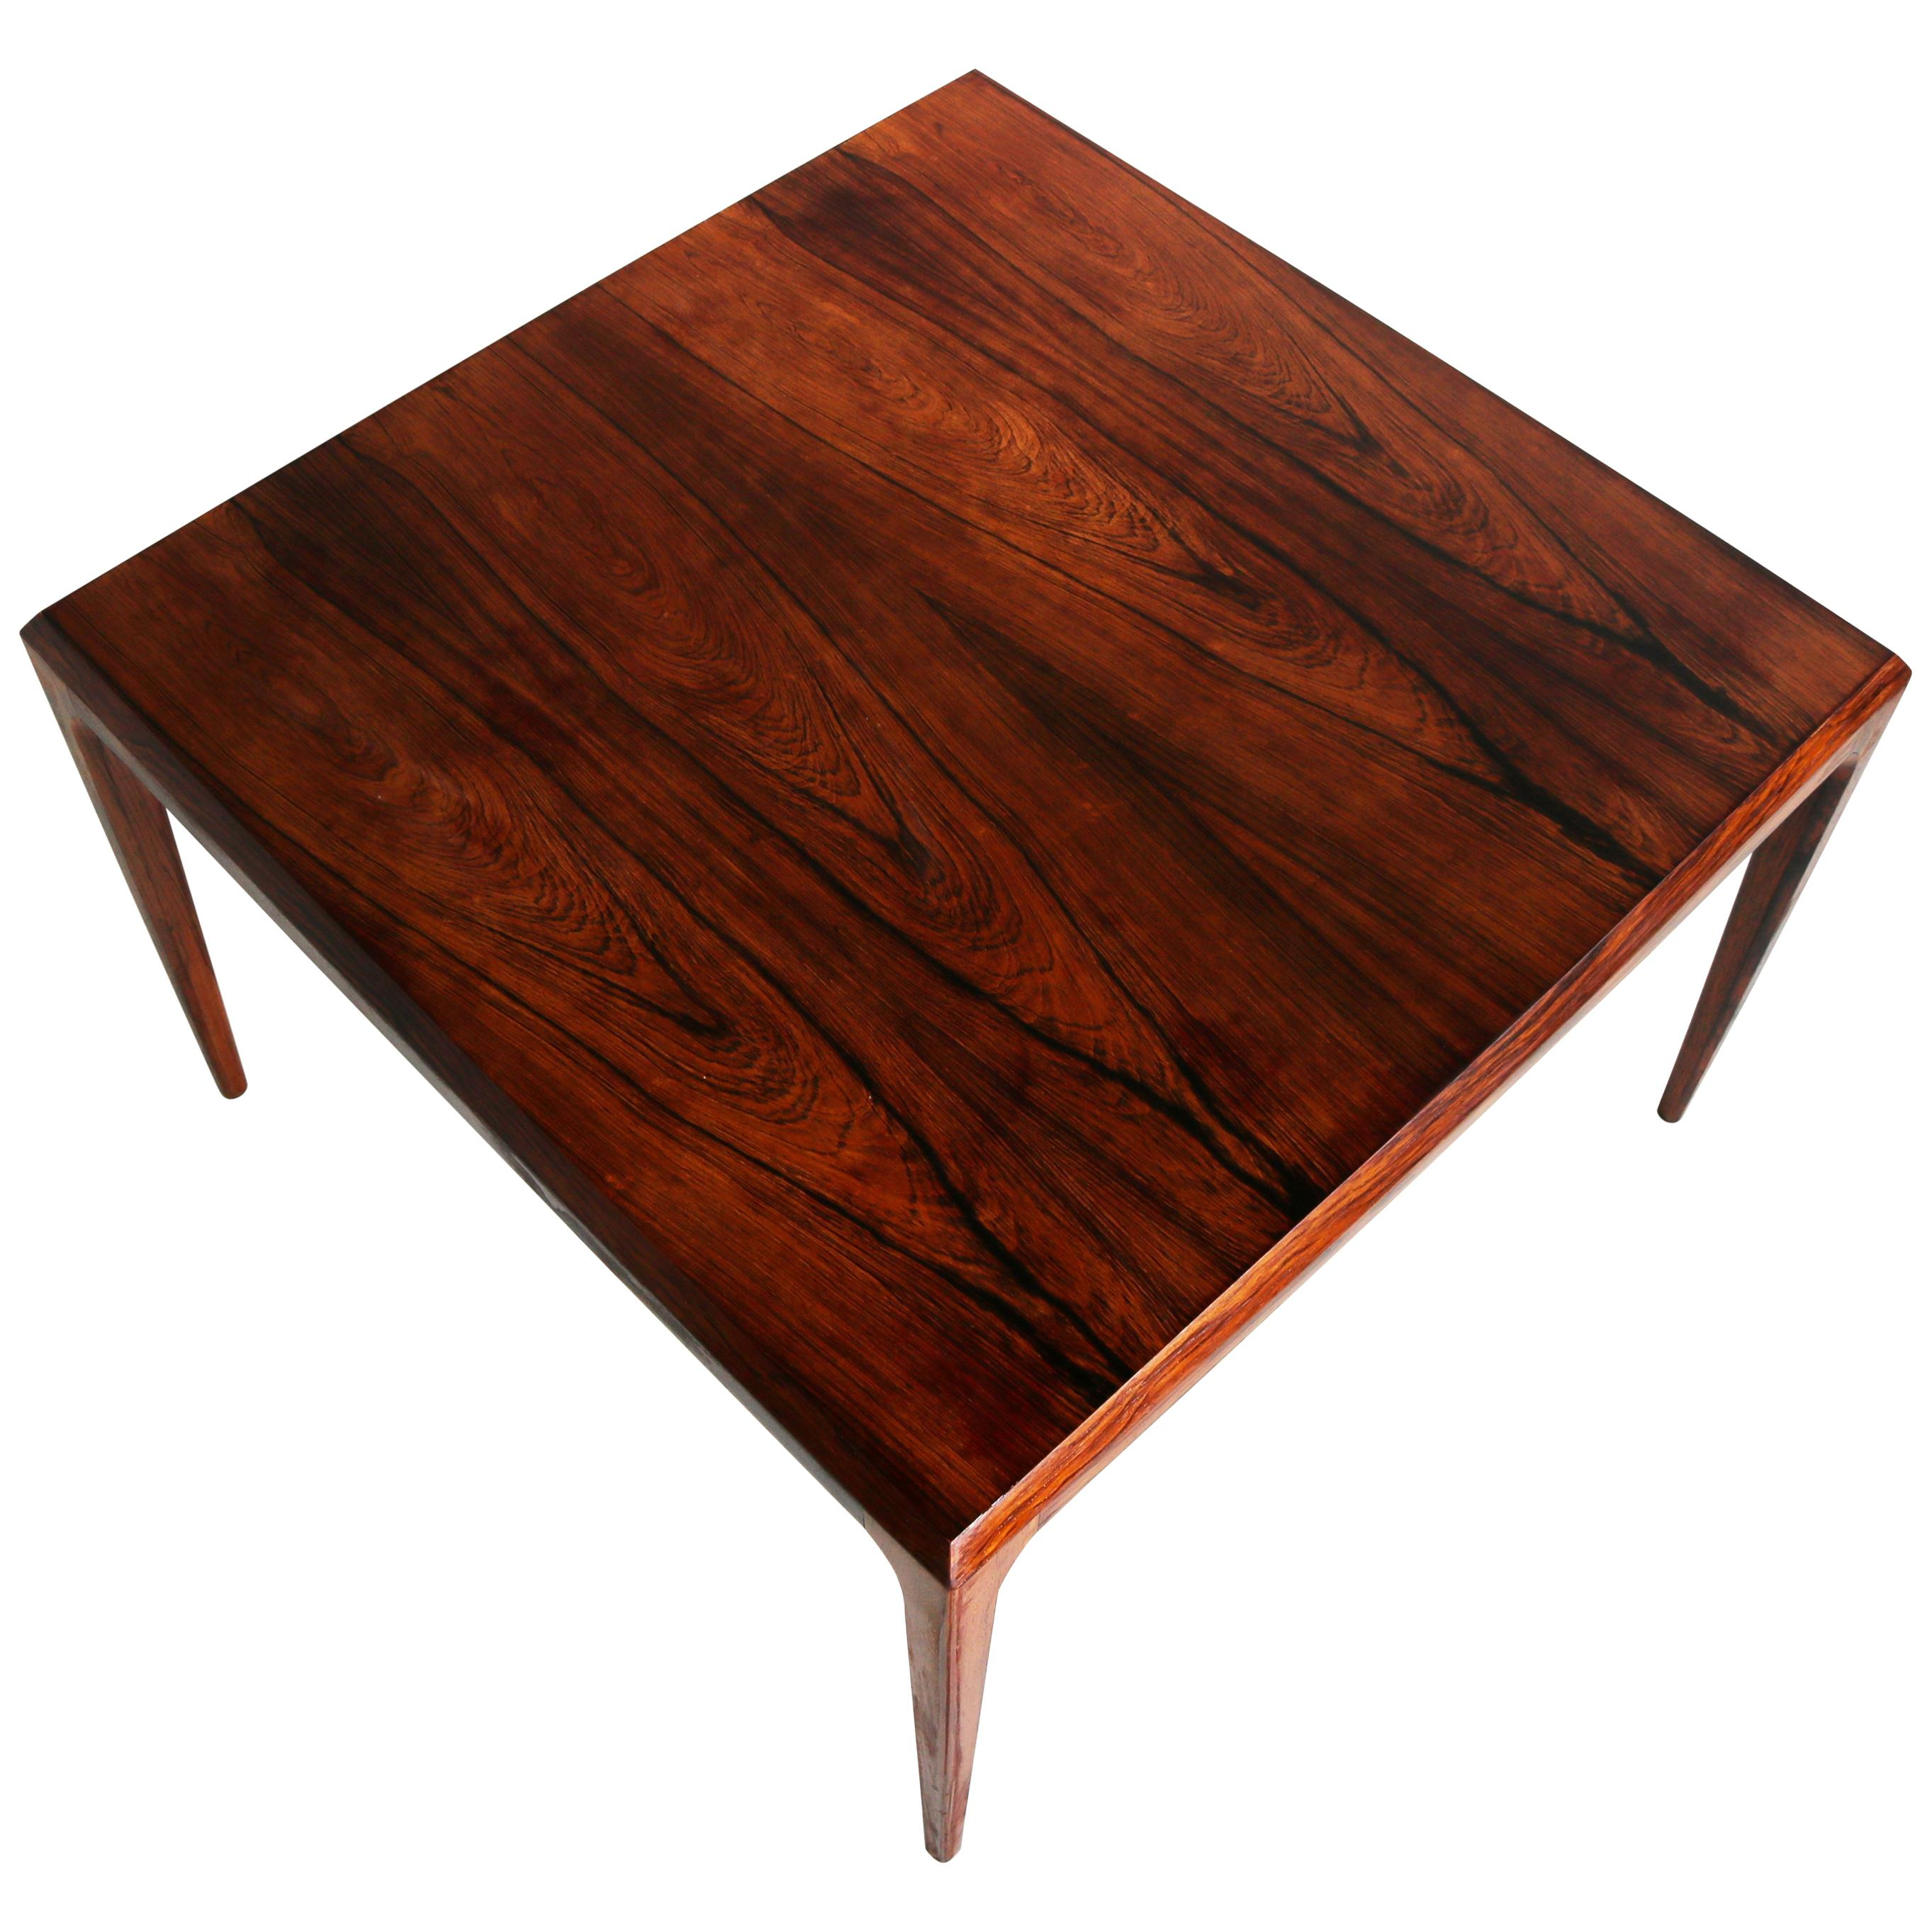 Magnificent Rosewood Coffee Table by Johannes Andersen for CFC Silkeborg, 1950s